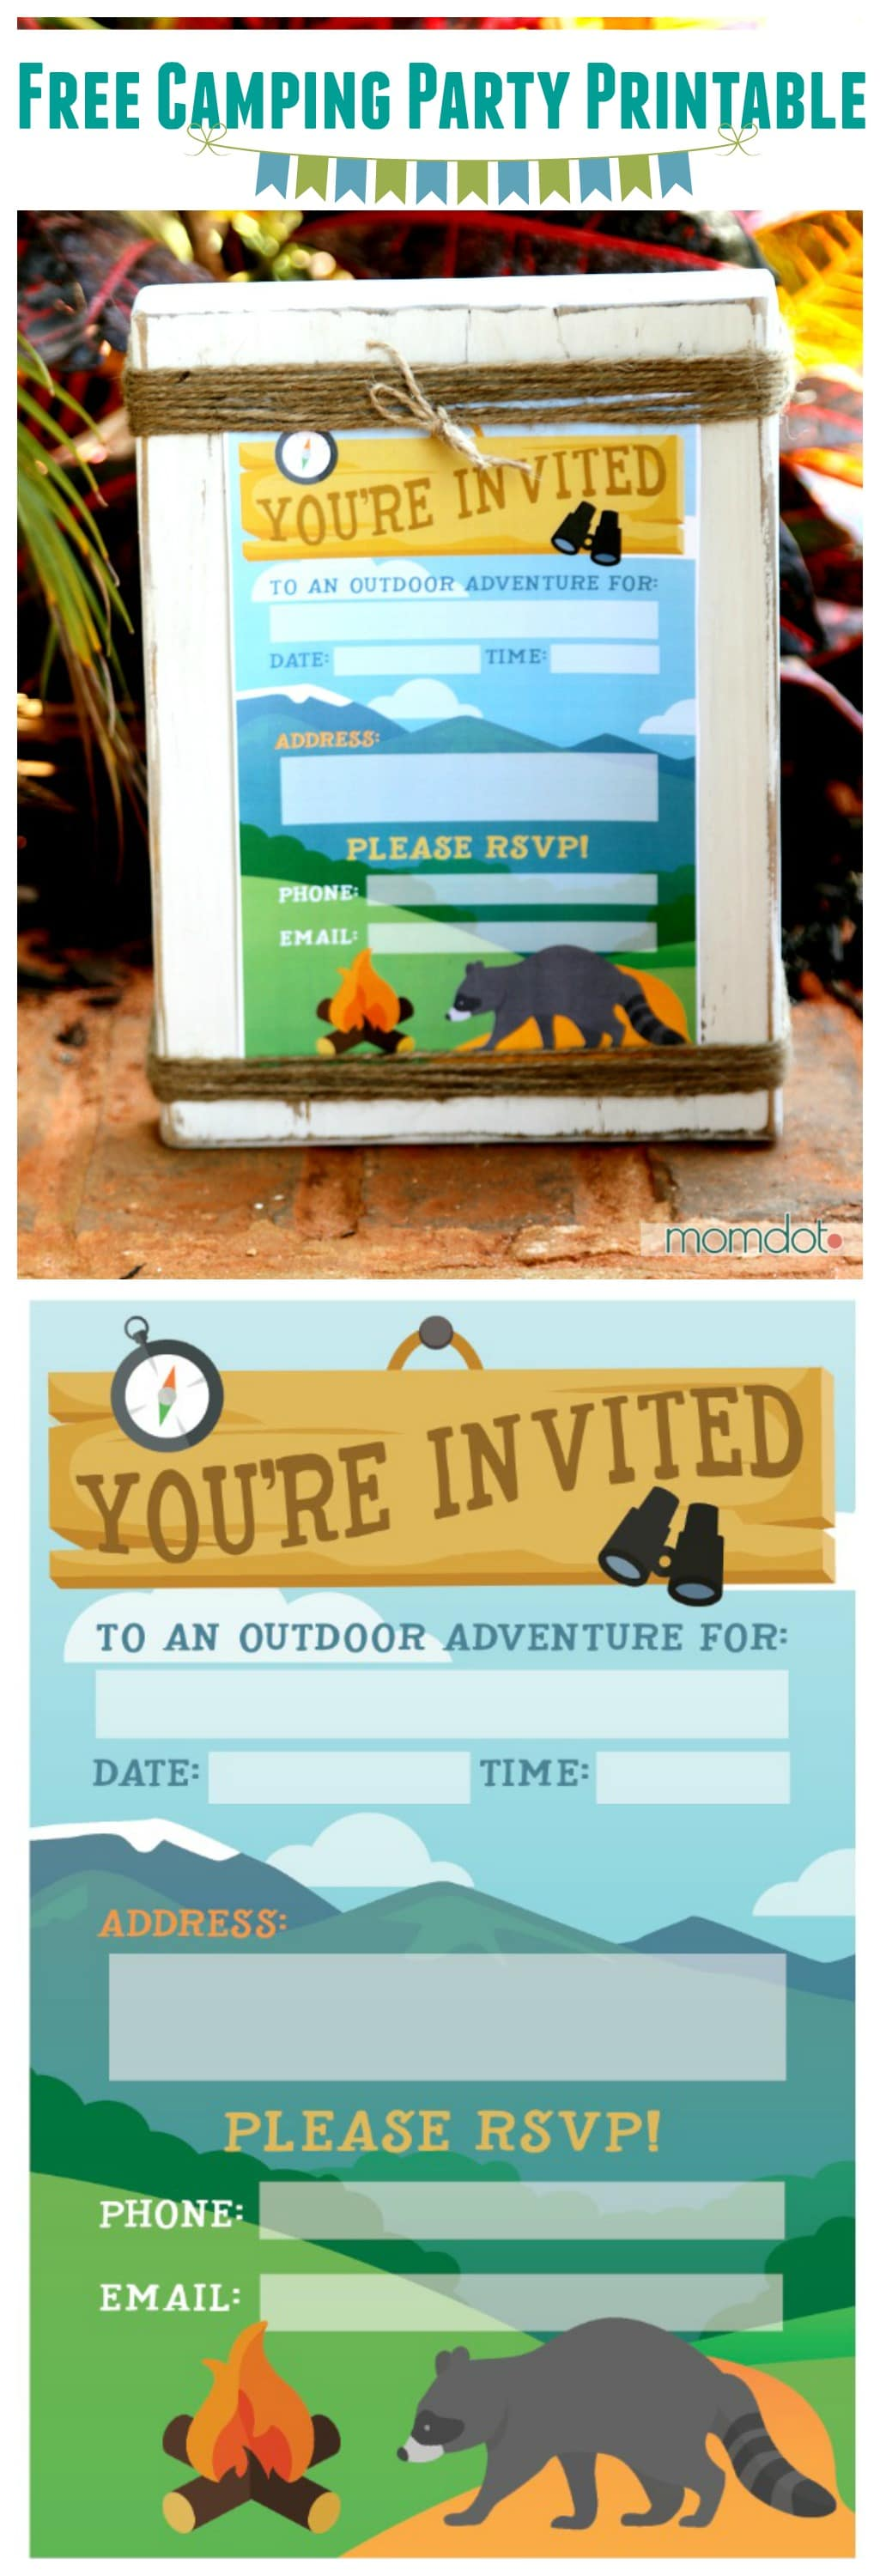 Camping Birthday Party Invite (or any Party Invite) FREE PRINTABLE, plus more free camping printables